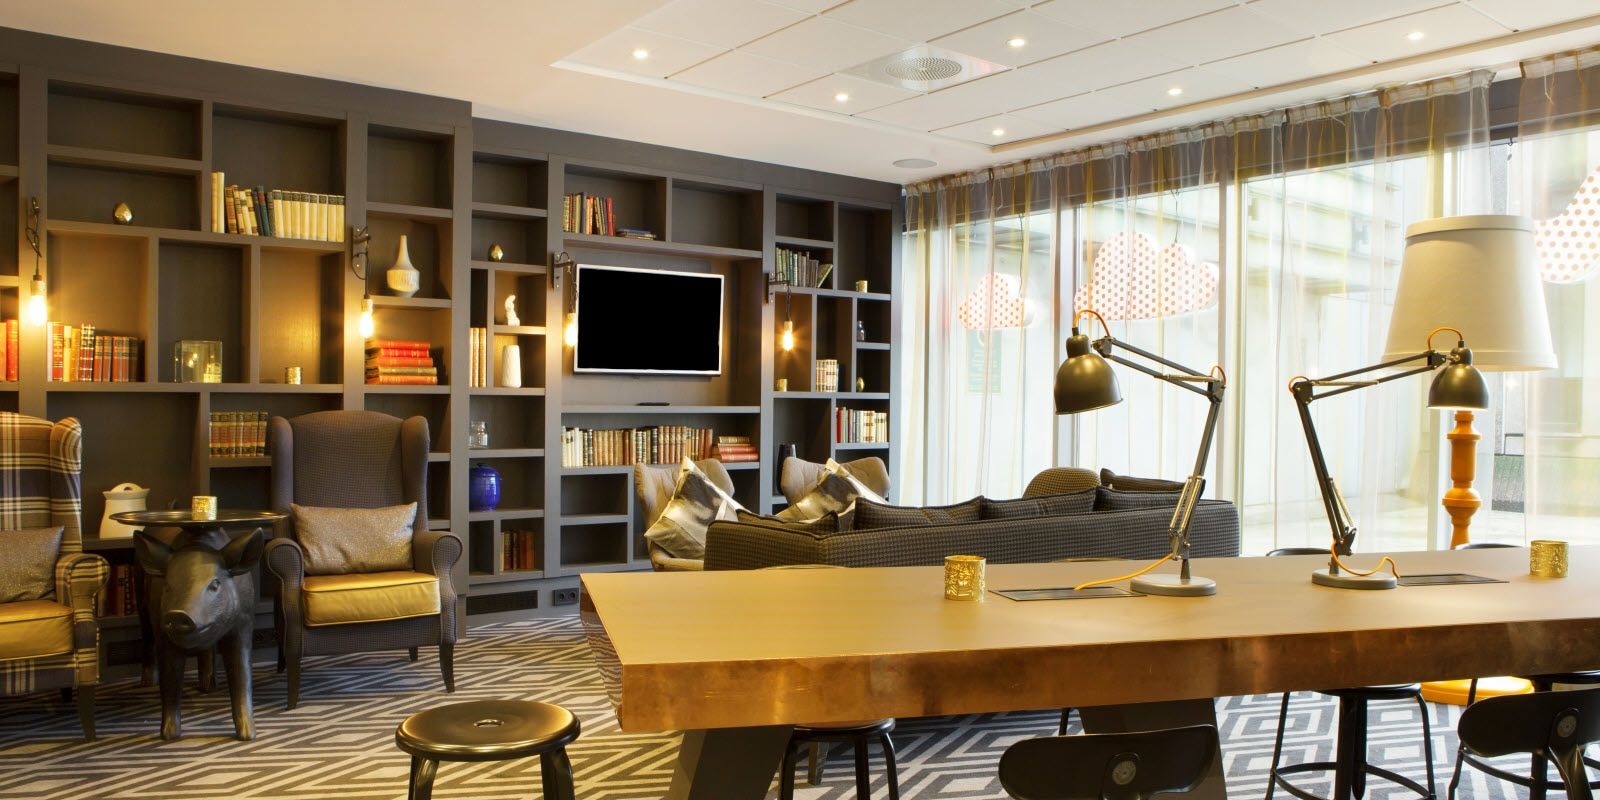 over 40 dating essex london